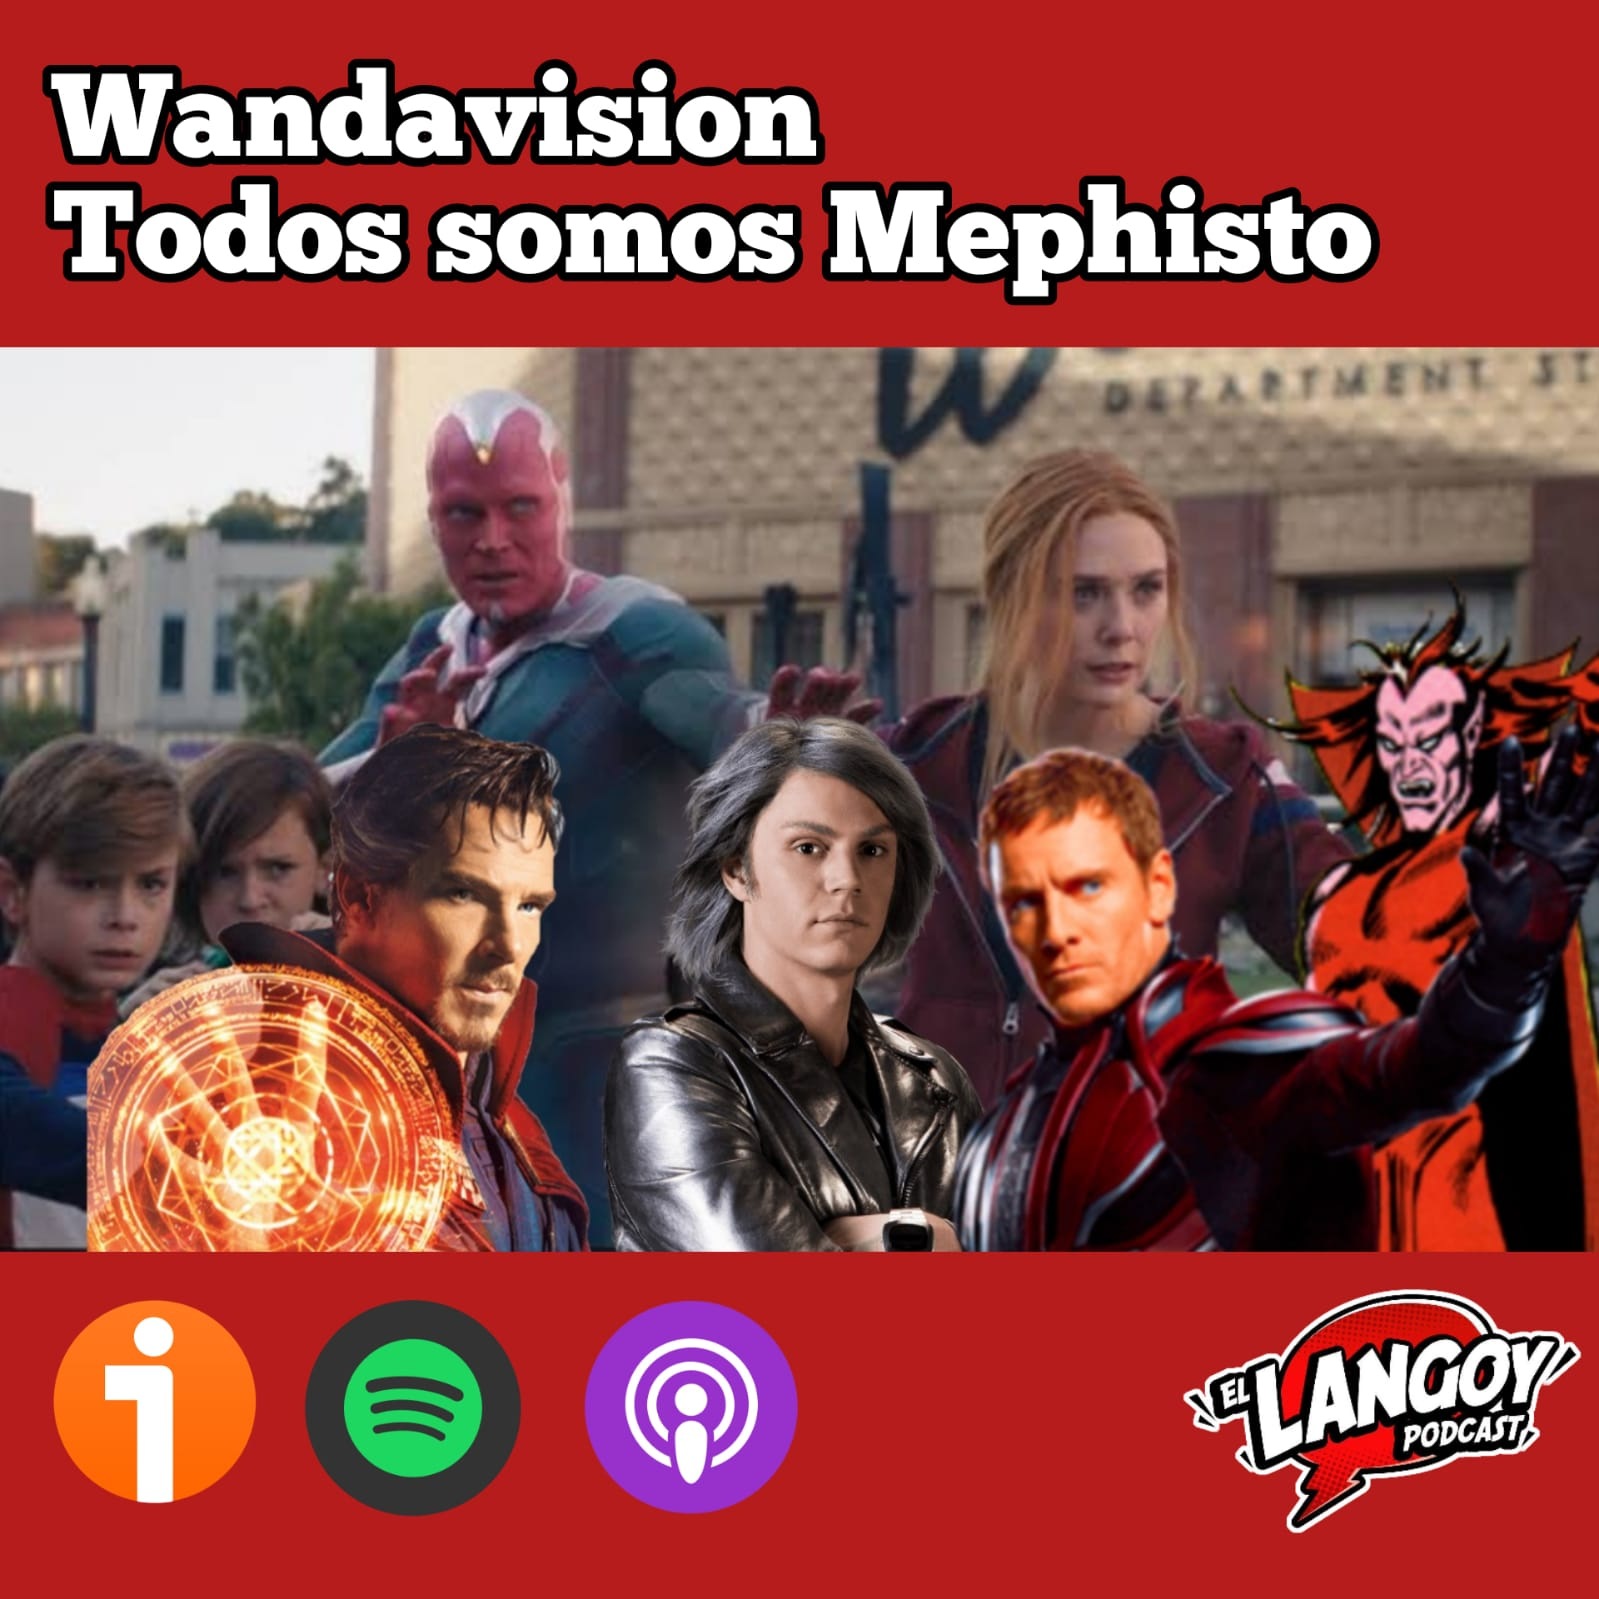 WandaVision Marvel Studios Podcast El Langoy Disney Plus